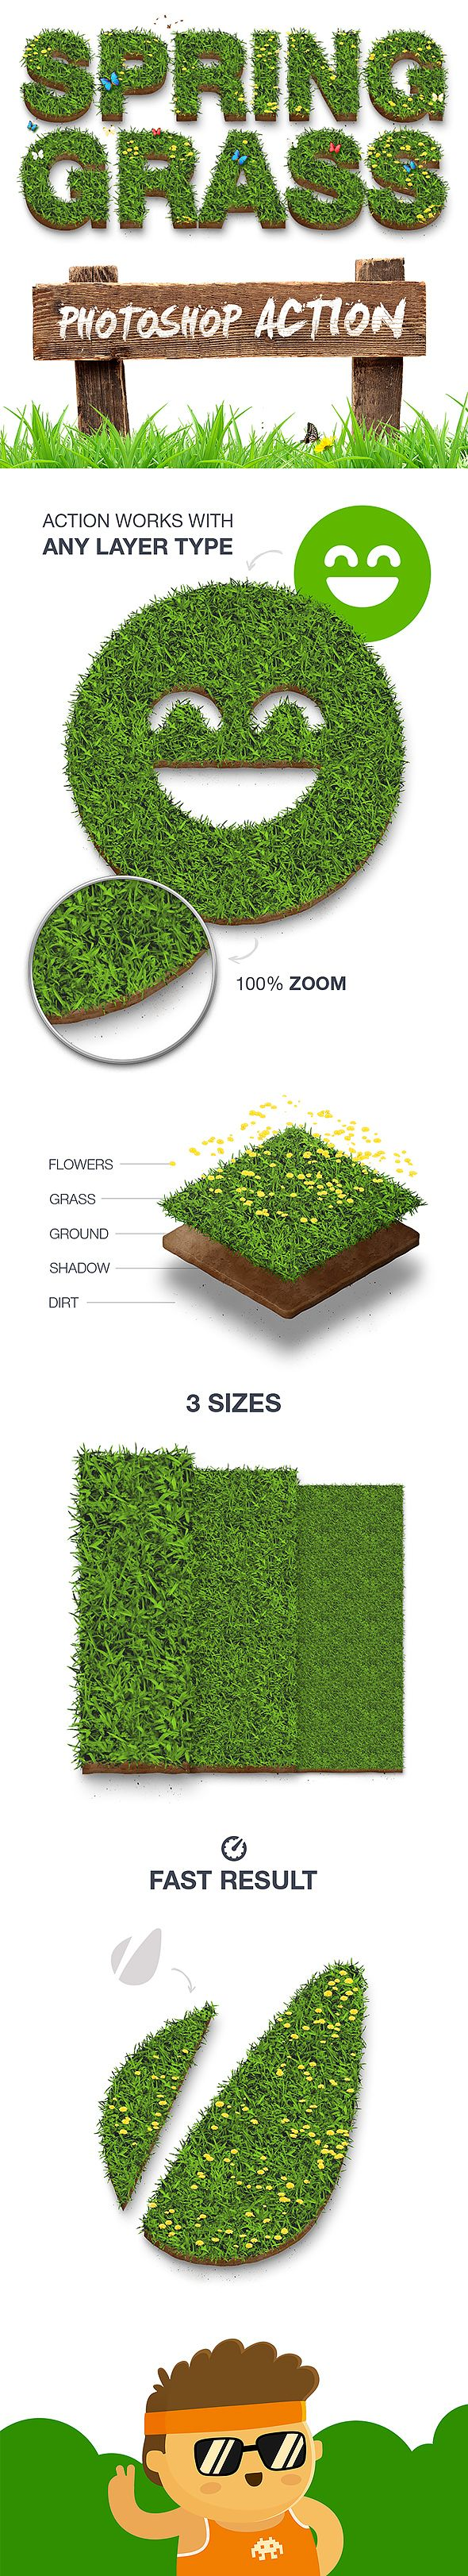 Spring Grass - #Photoshop Action - #Actions #Photoshop Download here: https://graphicriver.net/item/spring-grass-photoshop-action/19554719?ref=alena994